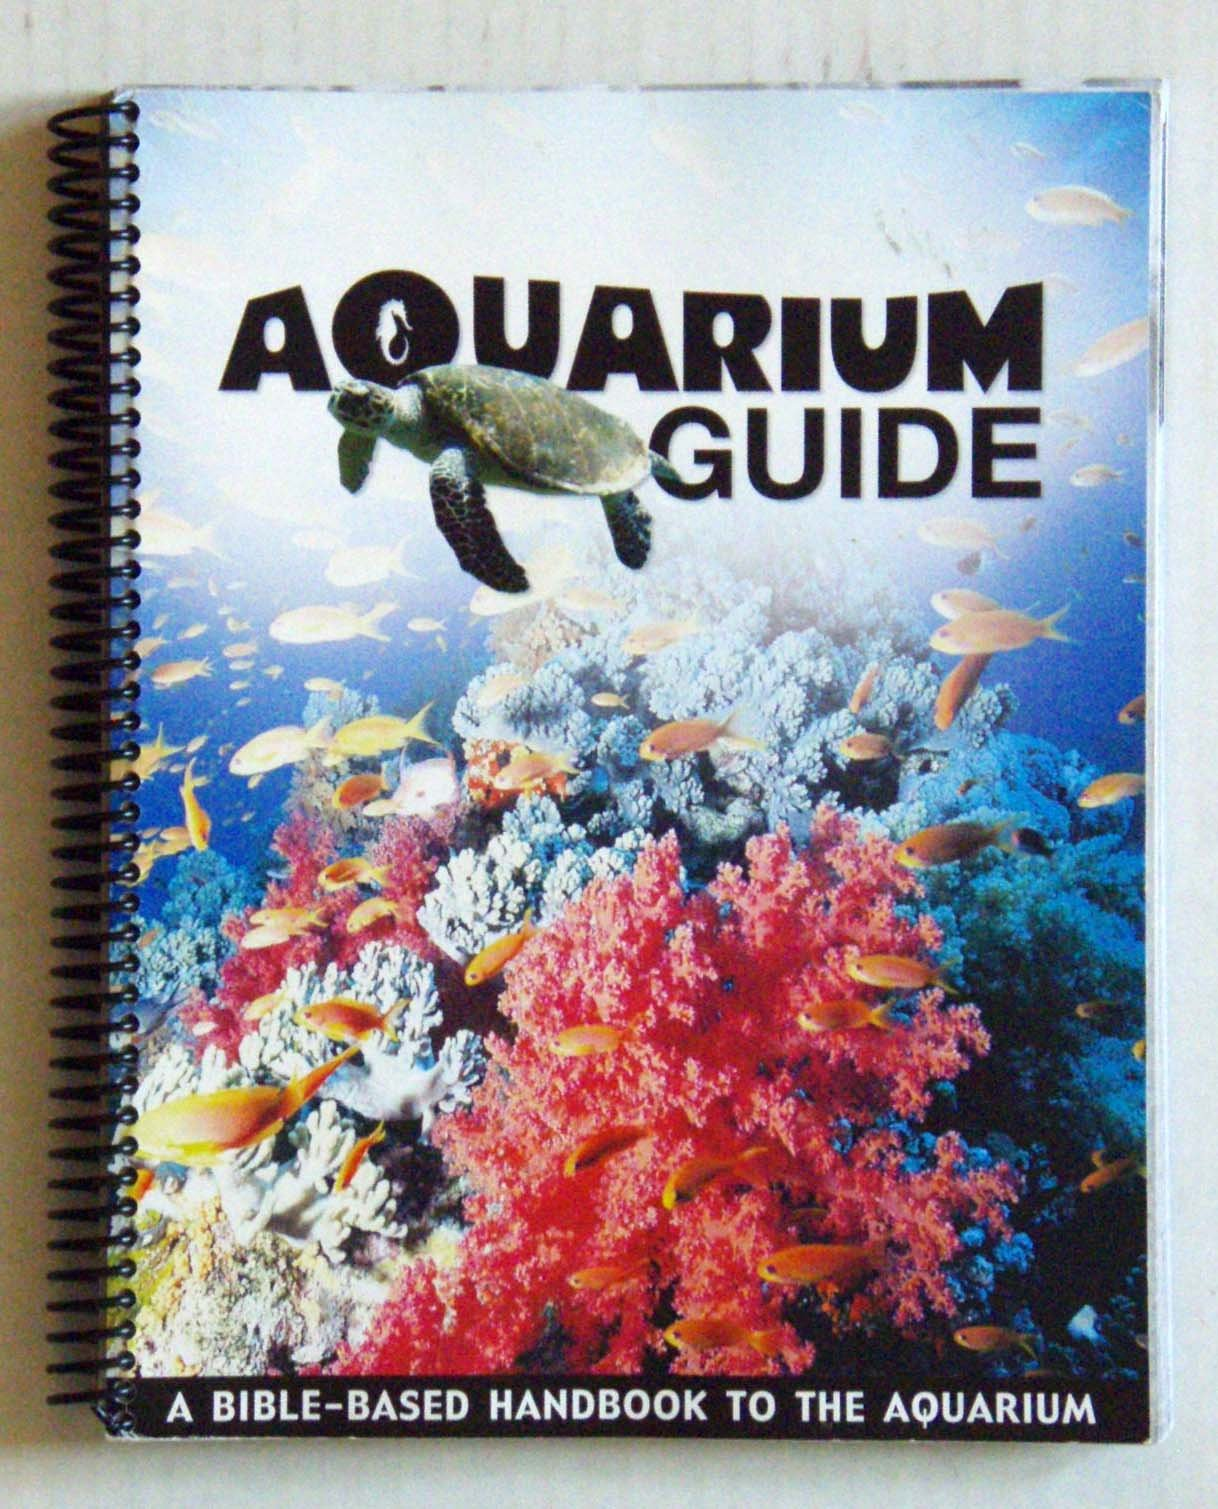 Fish aquarium guide - Aquarium Guide A Bible Based Hanbook To The Aquarium Becky Stelzer Gary Vaterlaus 9781600920271 Amazon Com Books